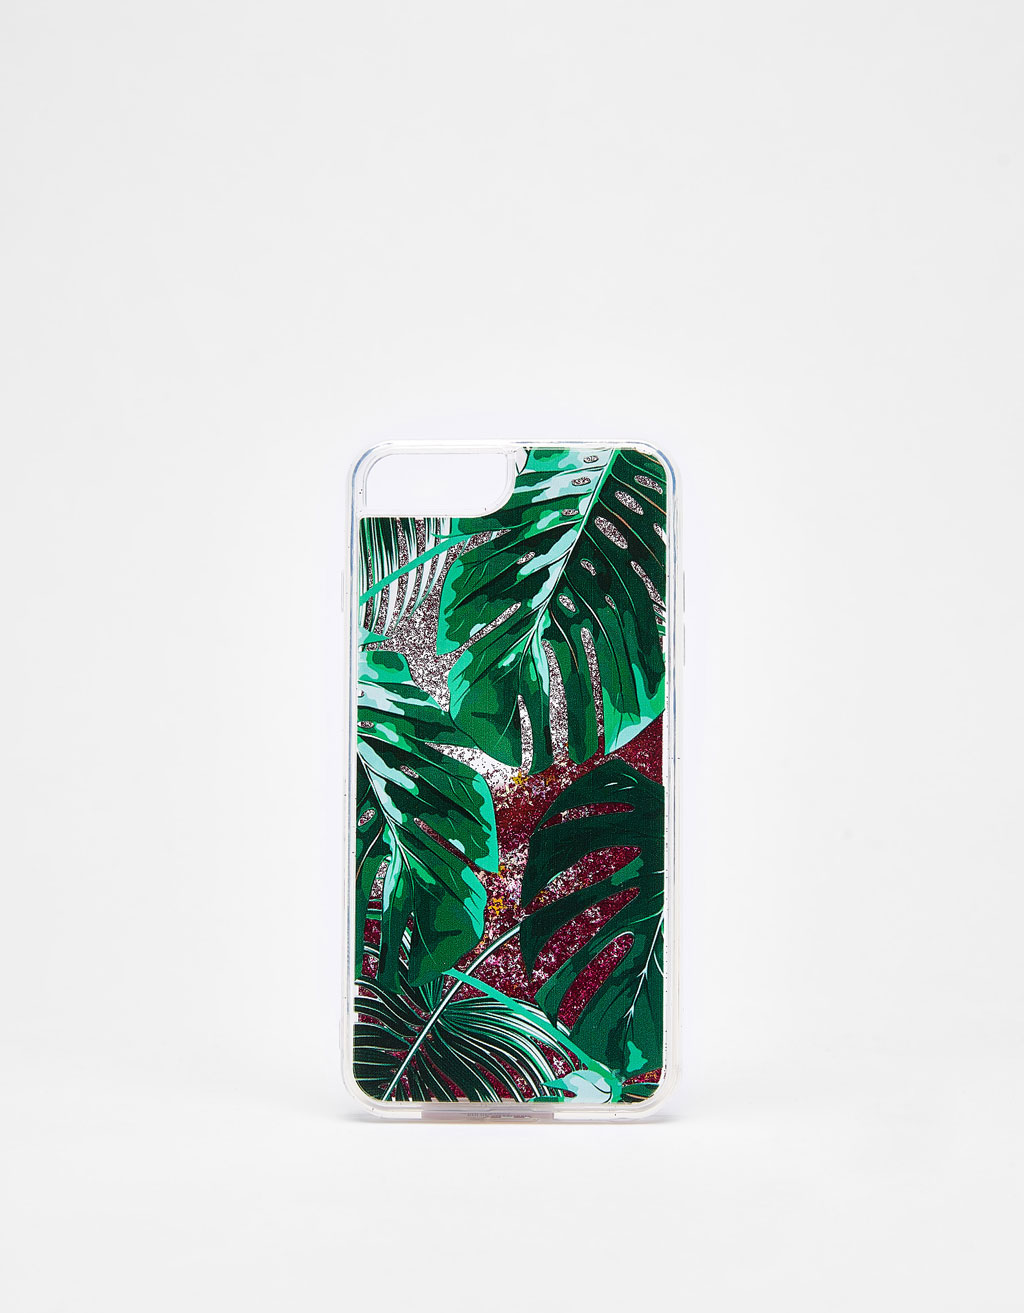 Carcasa tropical iPhone 6/7/8 plus